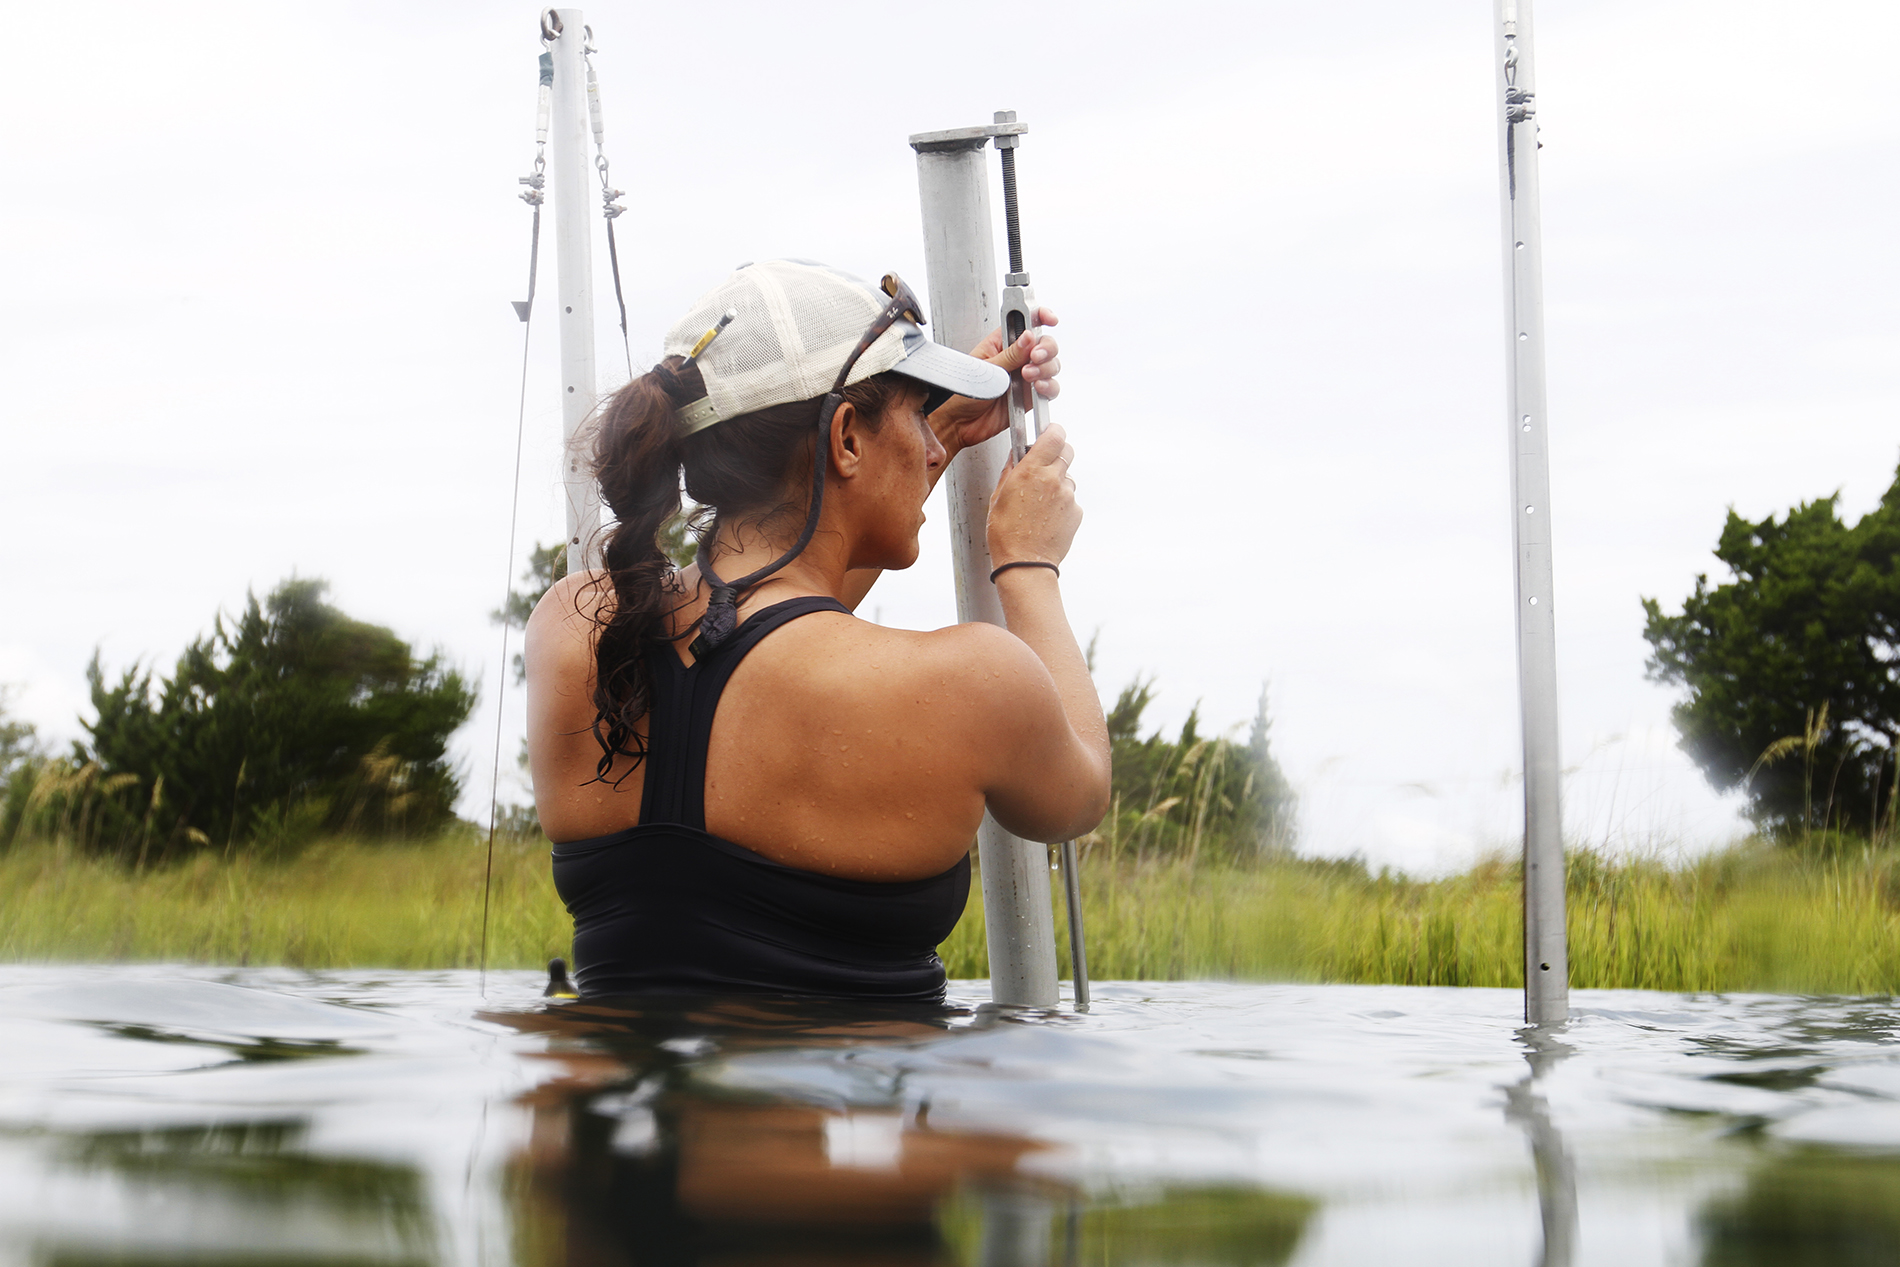 a girl adjusts a camera rig in the lake